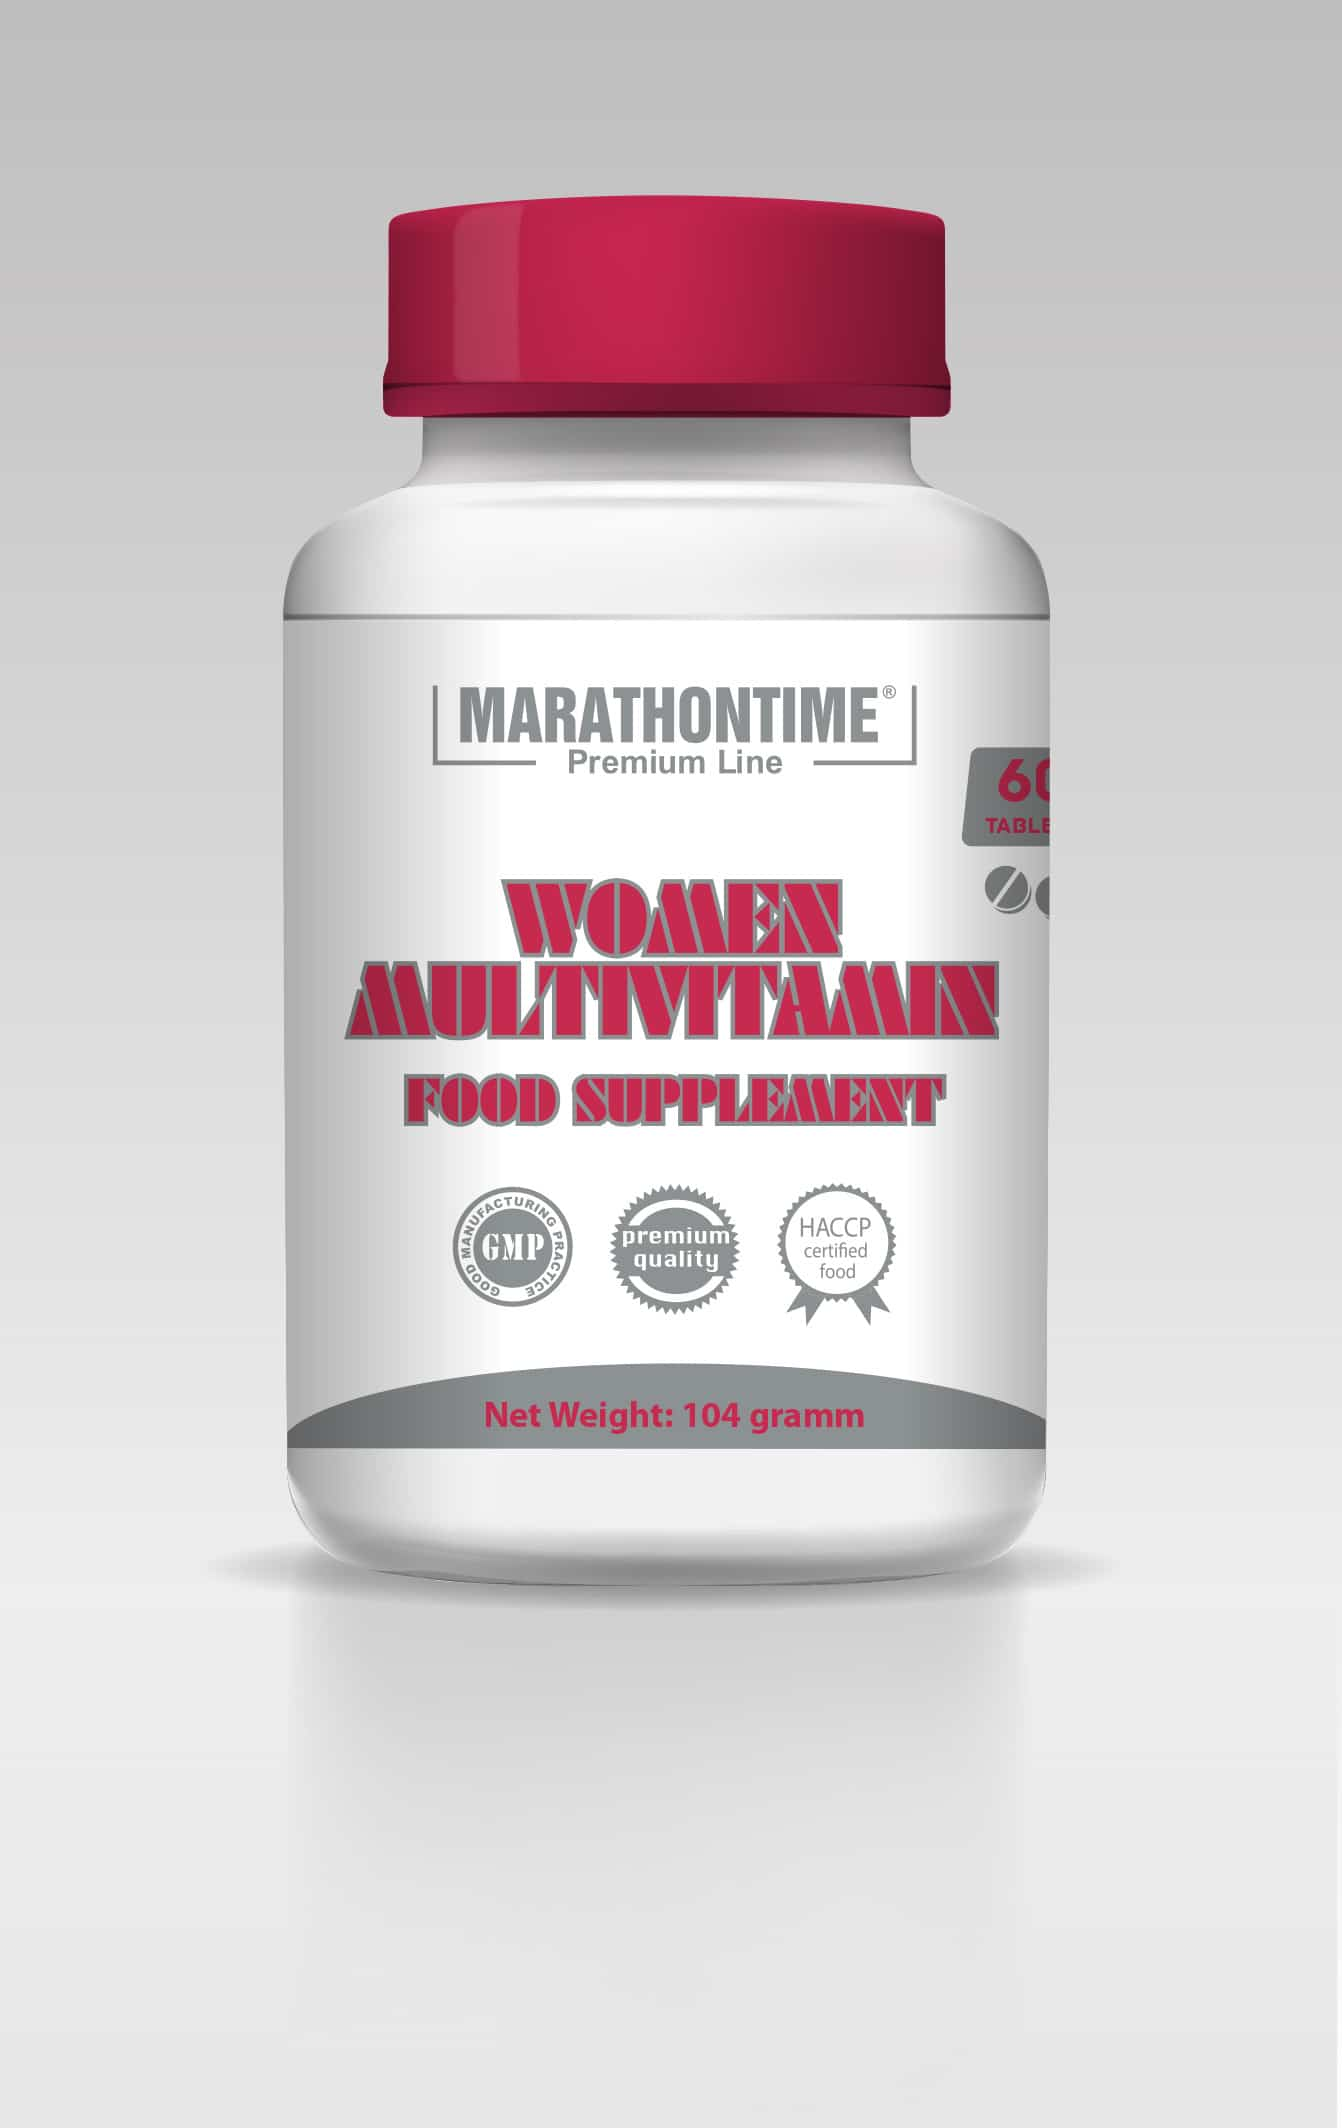 Marathontime WOMEN Multivitamin 60 tbl